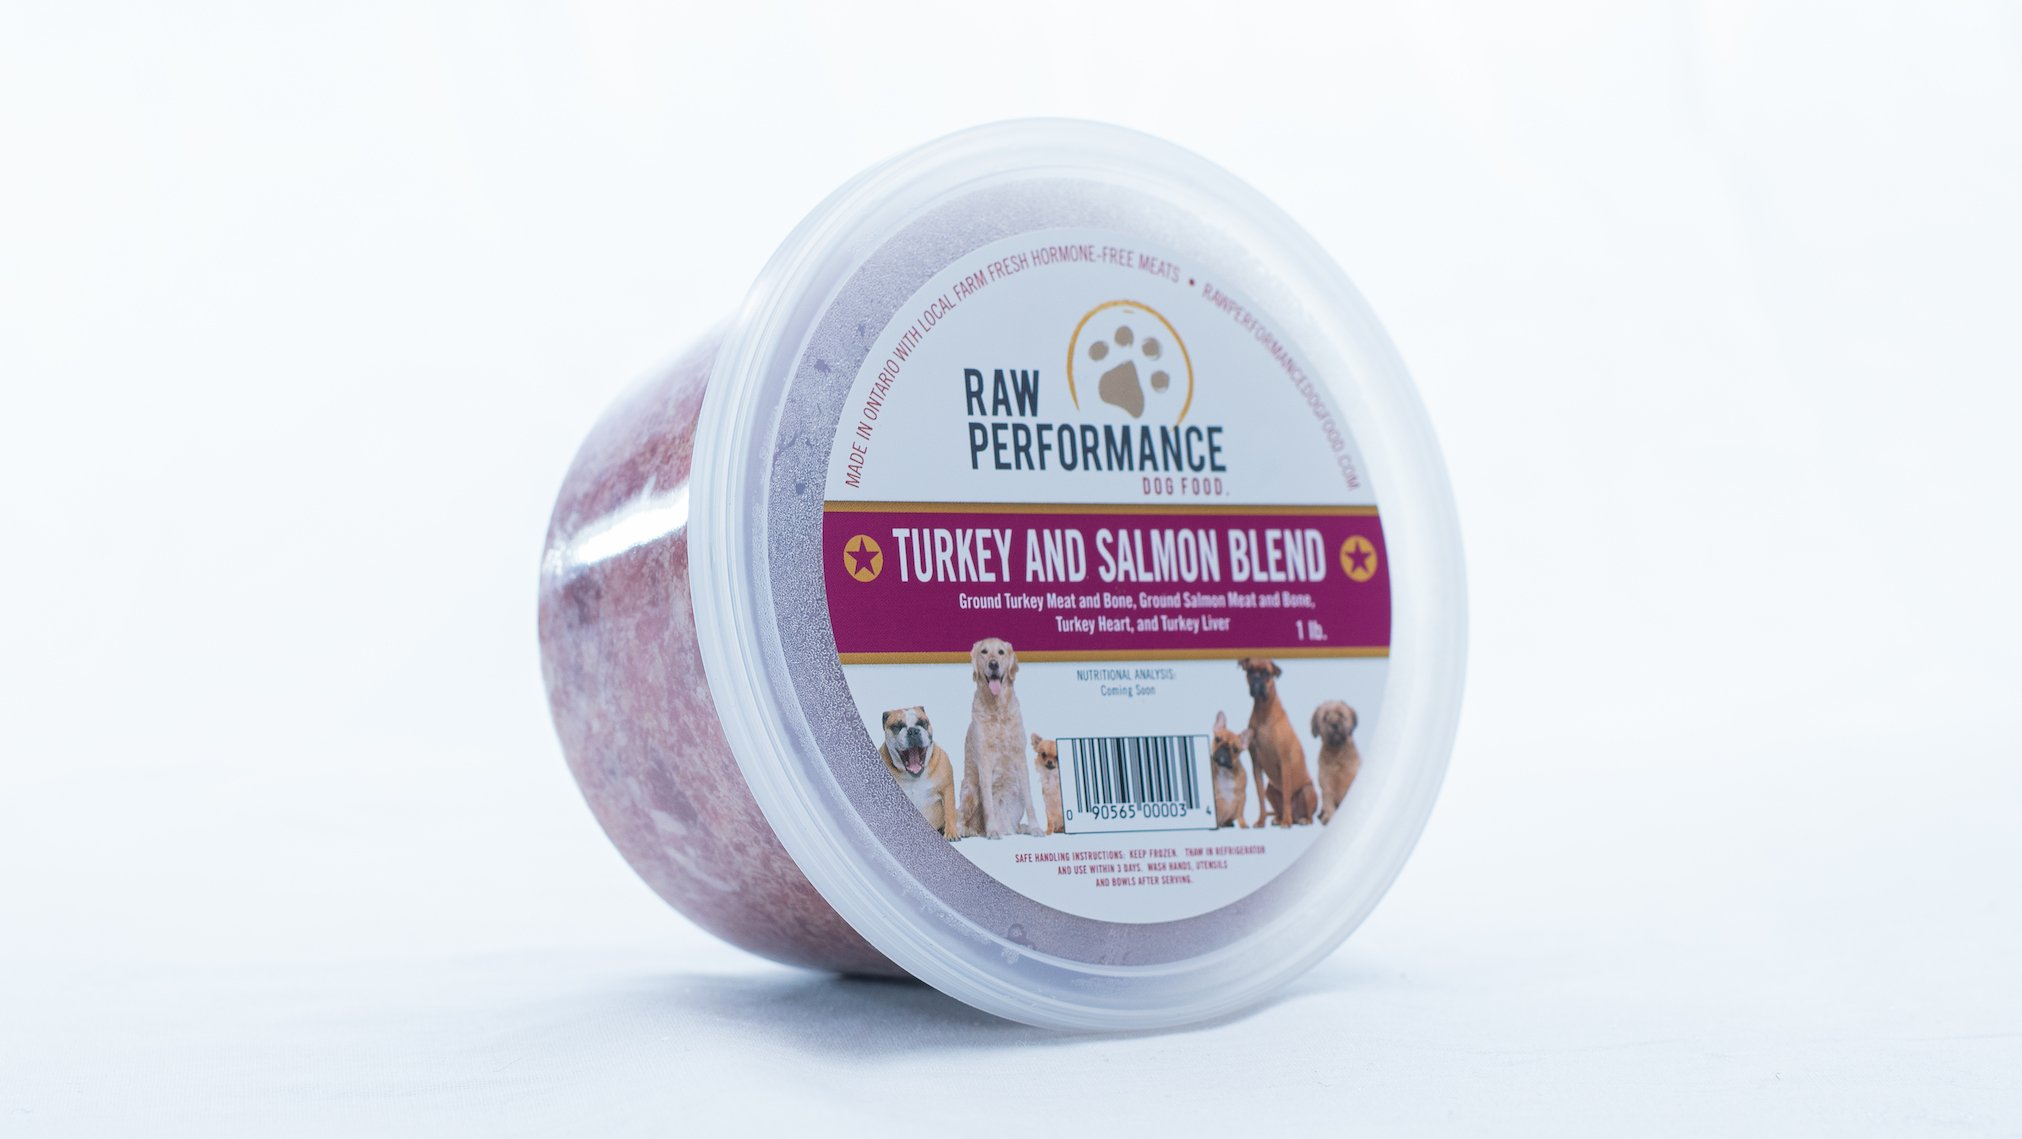 Raw Performance Specialty Blends Turkey & Salmon Blend Dog Food, 1-lb